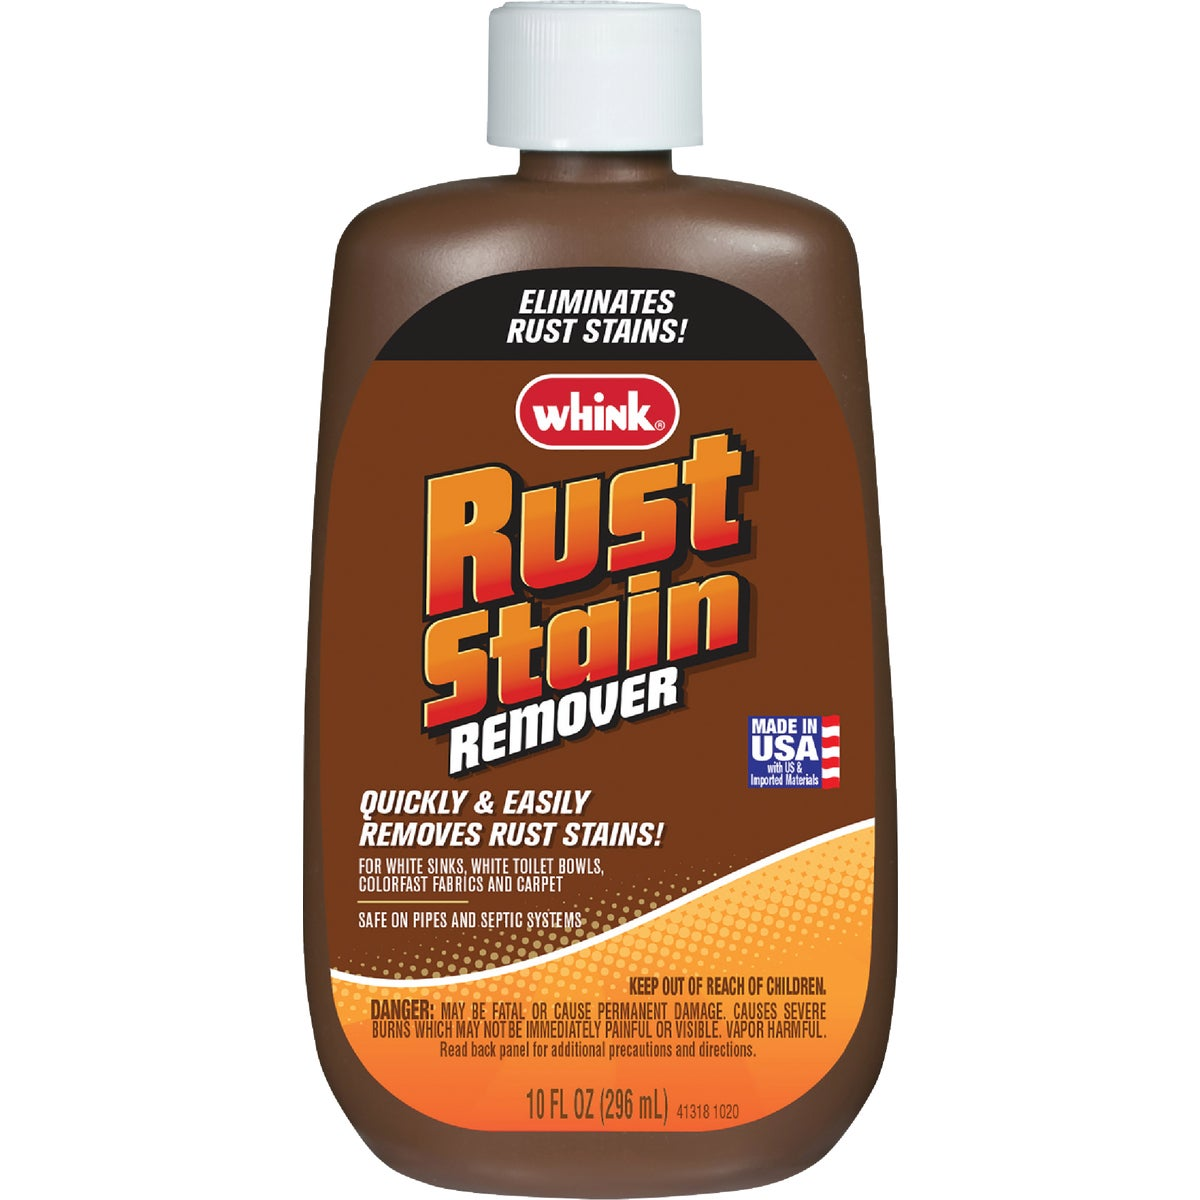 RUST/STAIN REMOVER